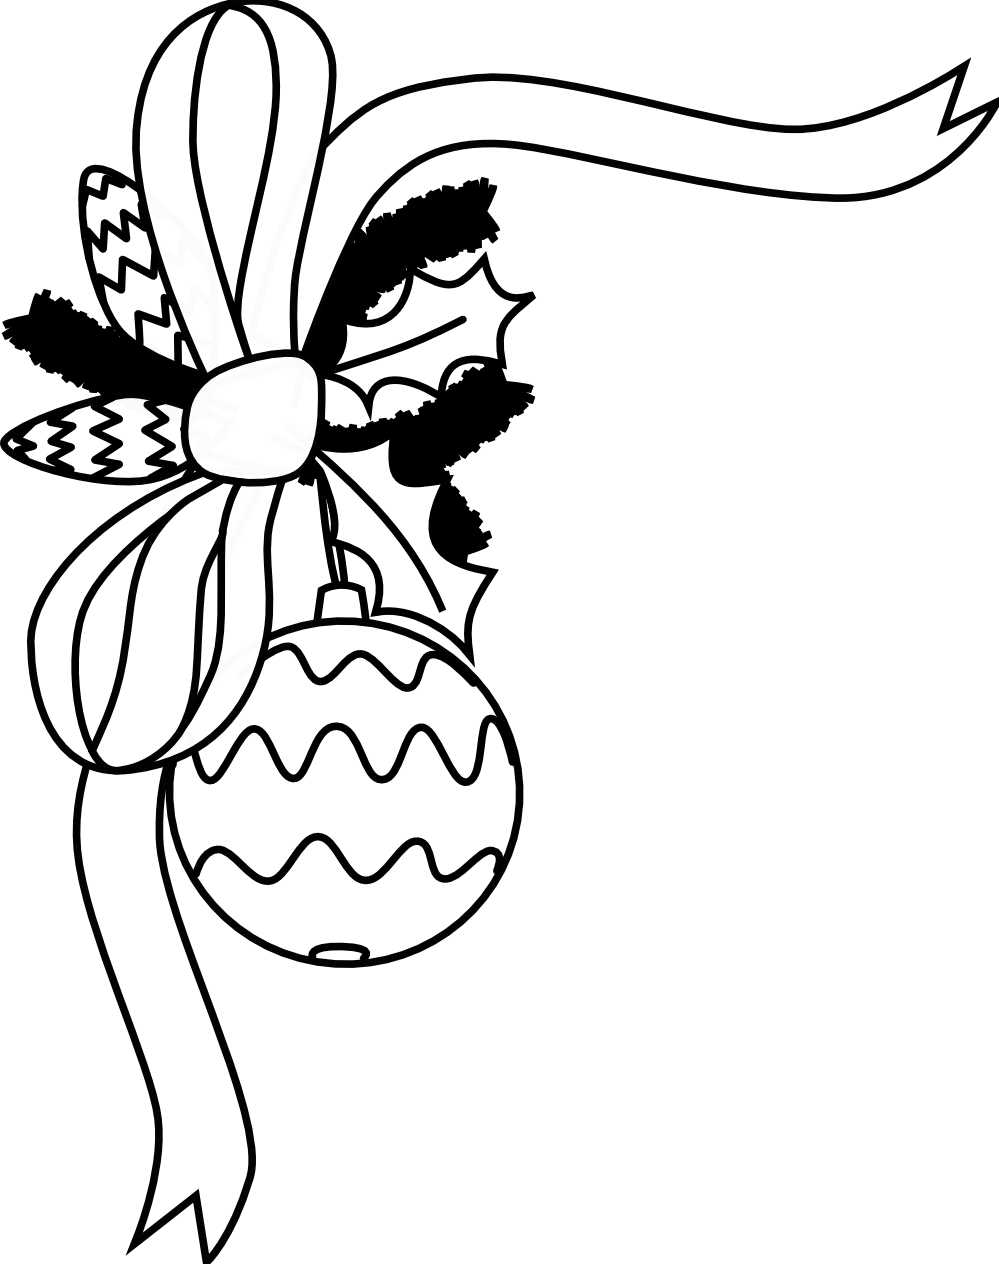 Ornament Clipart Black And White Black And White Christmas Decorations